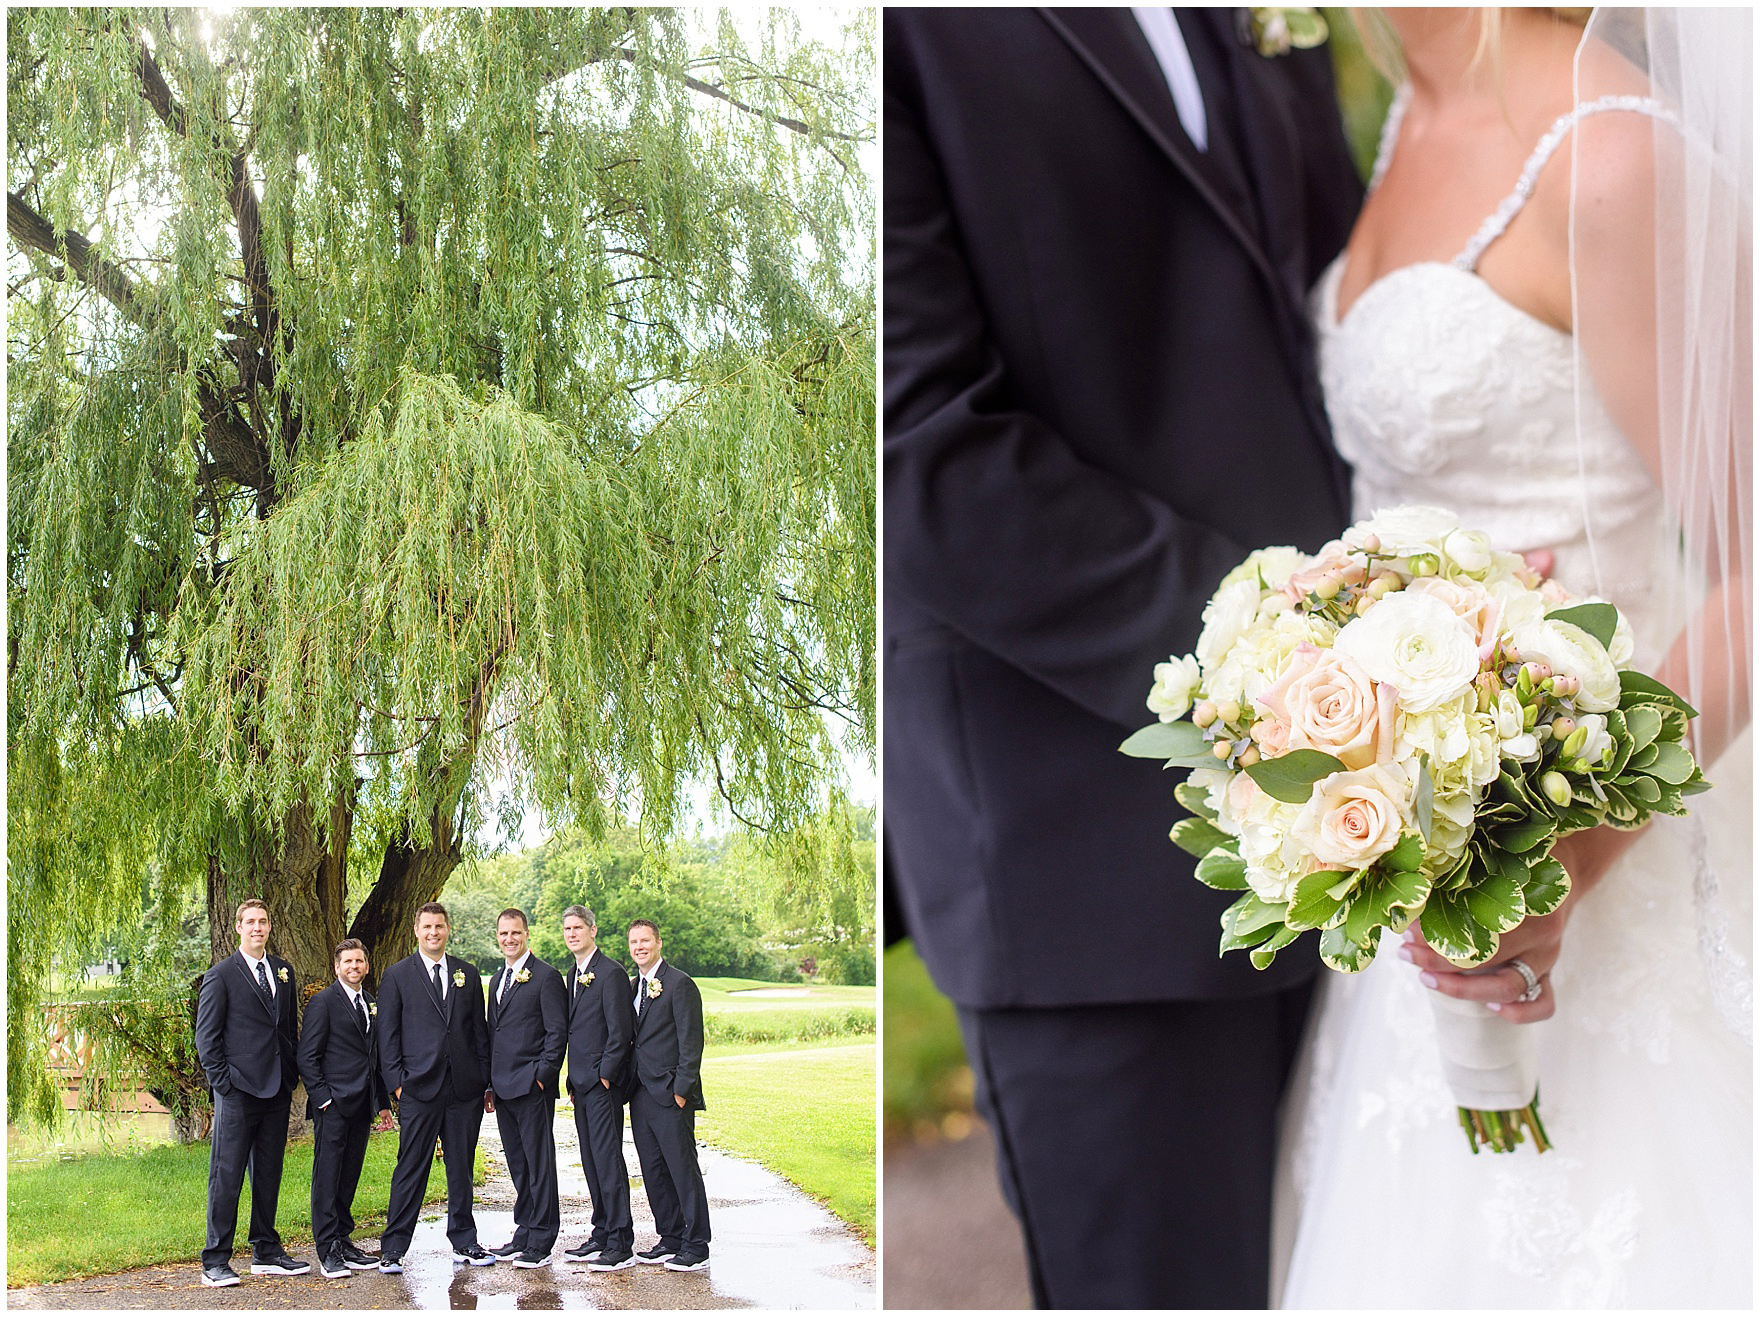 Portraits under a massive willow tree during an Itasca Country Club Illinois wedding.